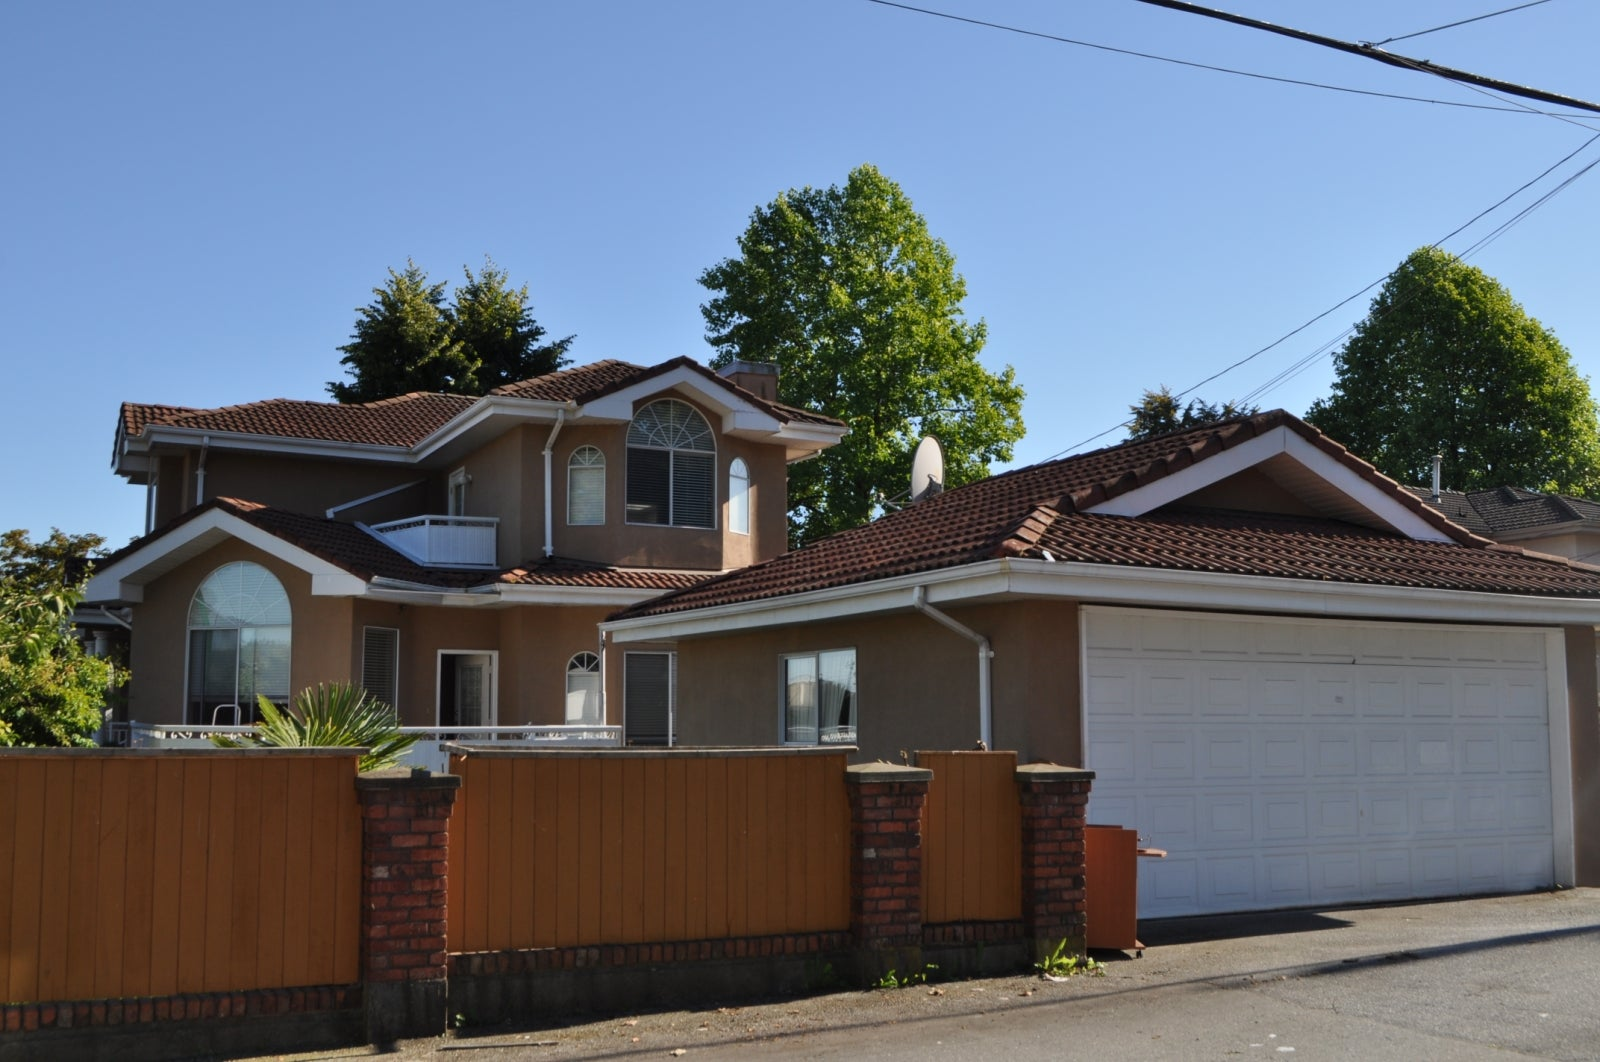 1081 Rosser Avenue , Burnaby BC V5C 6H3 - Willingdon Heights House/Single Family for sale, 5 Bedrooms (FSBO) #2